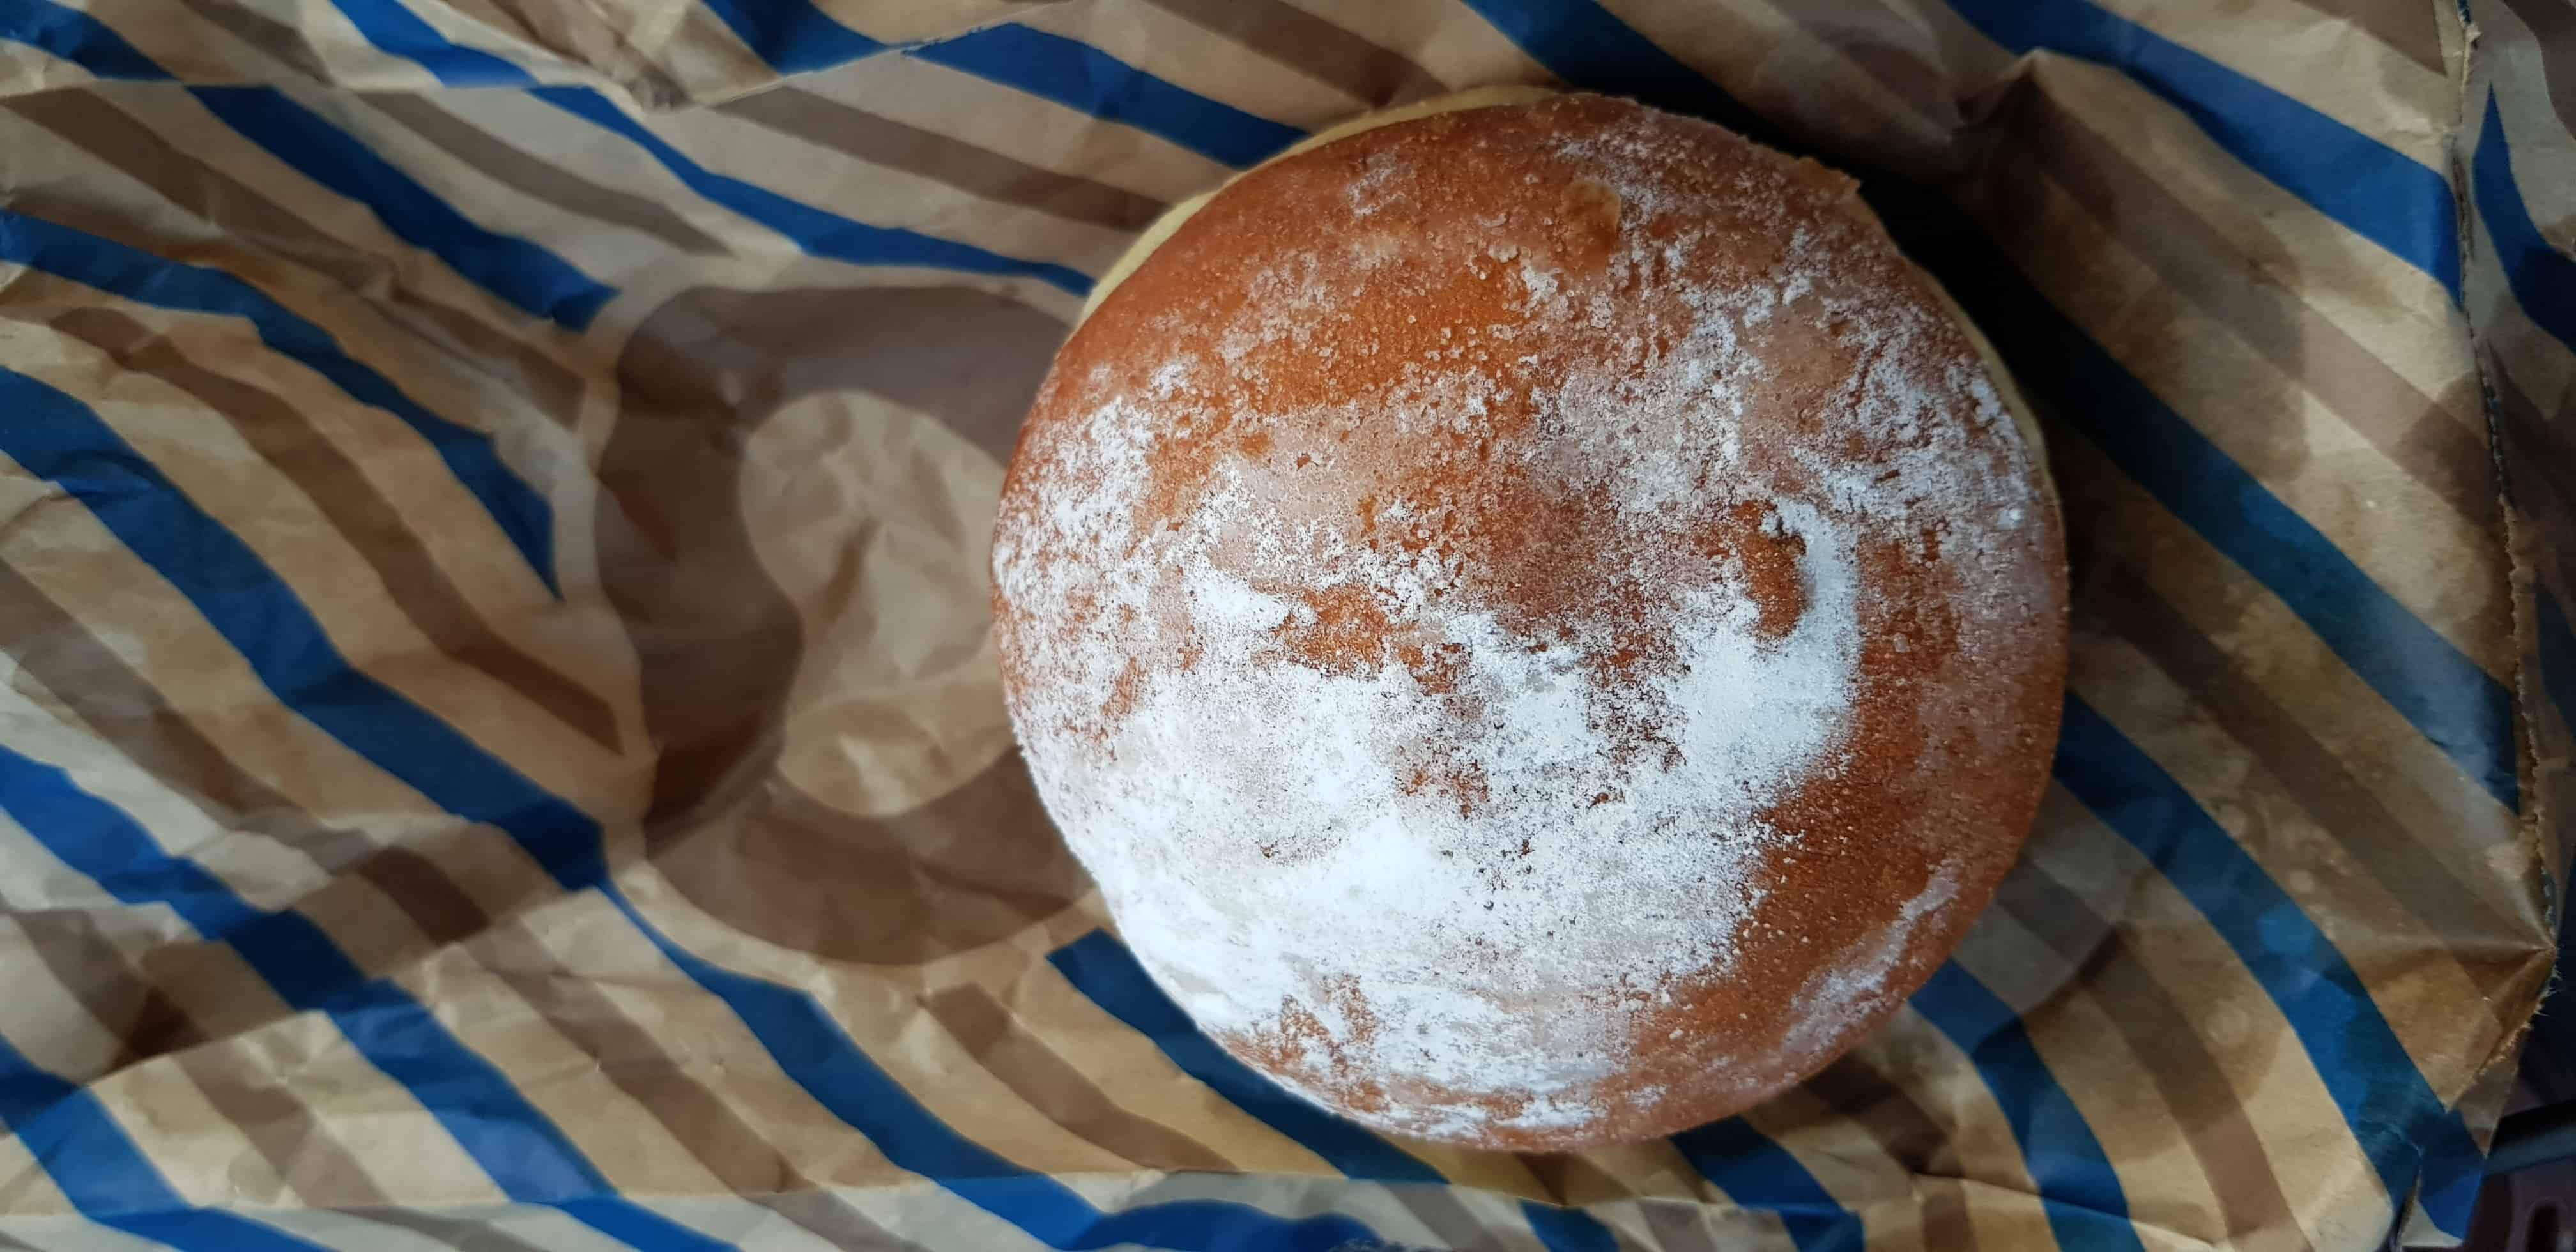 Pula Frutile Donut with powdered sugar